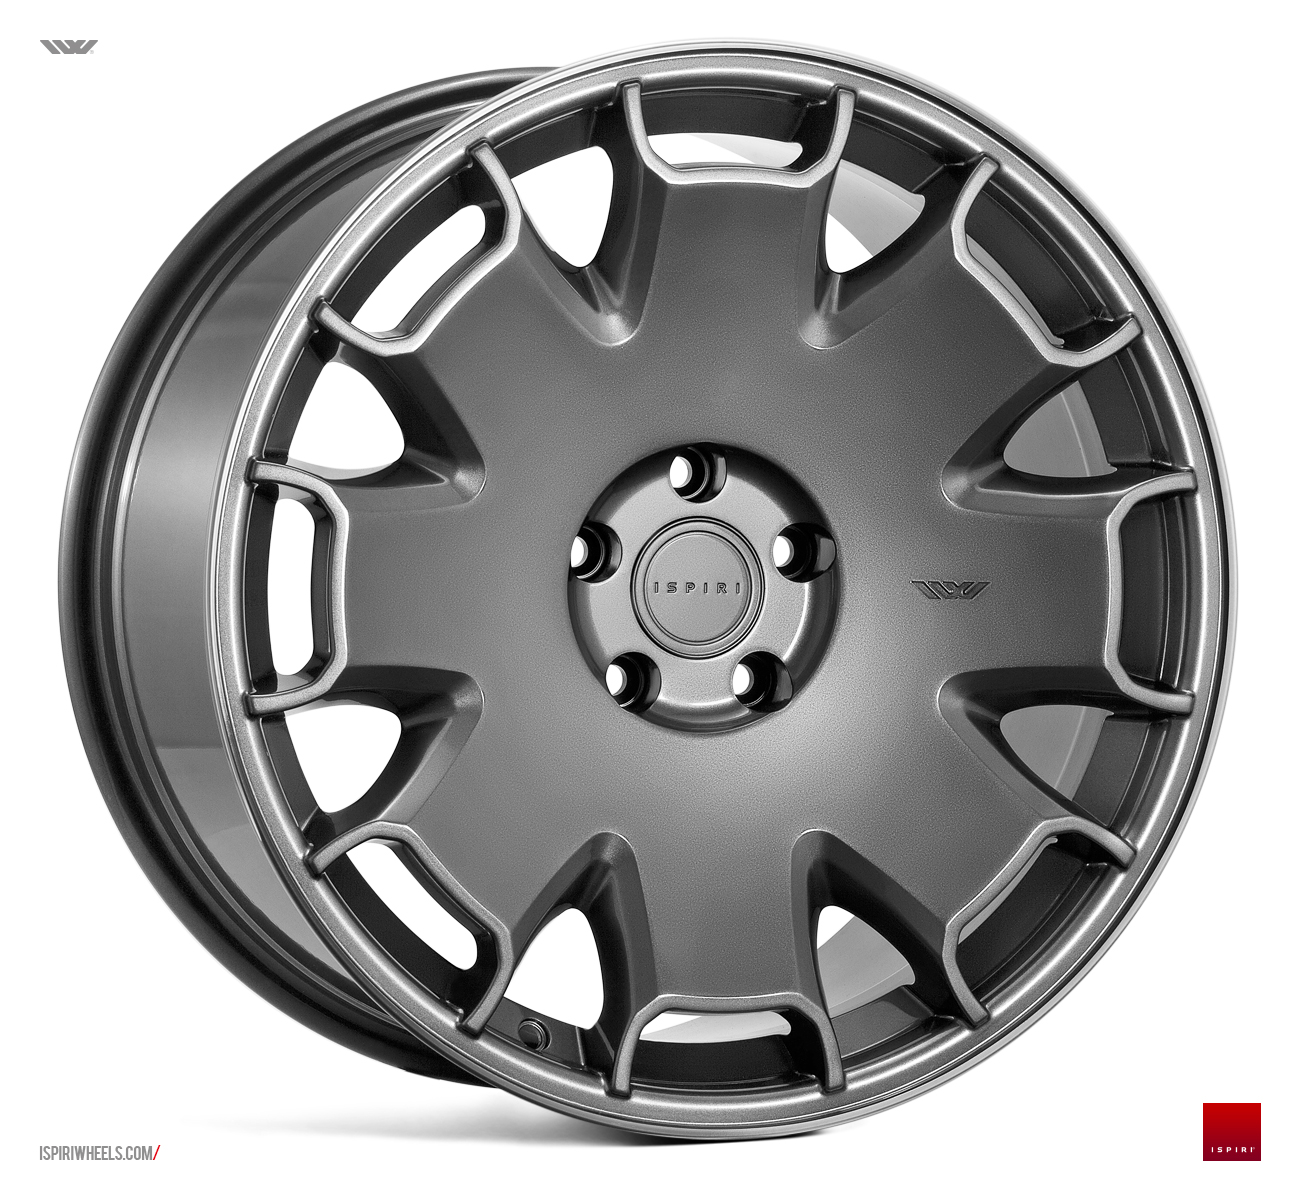 "NEW 19"" ISPIRI CSR2 ALLOYS IN CARBON GRAPHITE WITH POLISHED LIP et32 or et42/42"